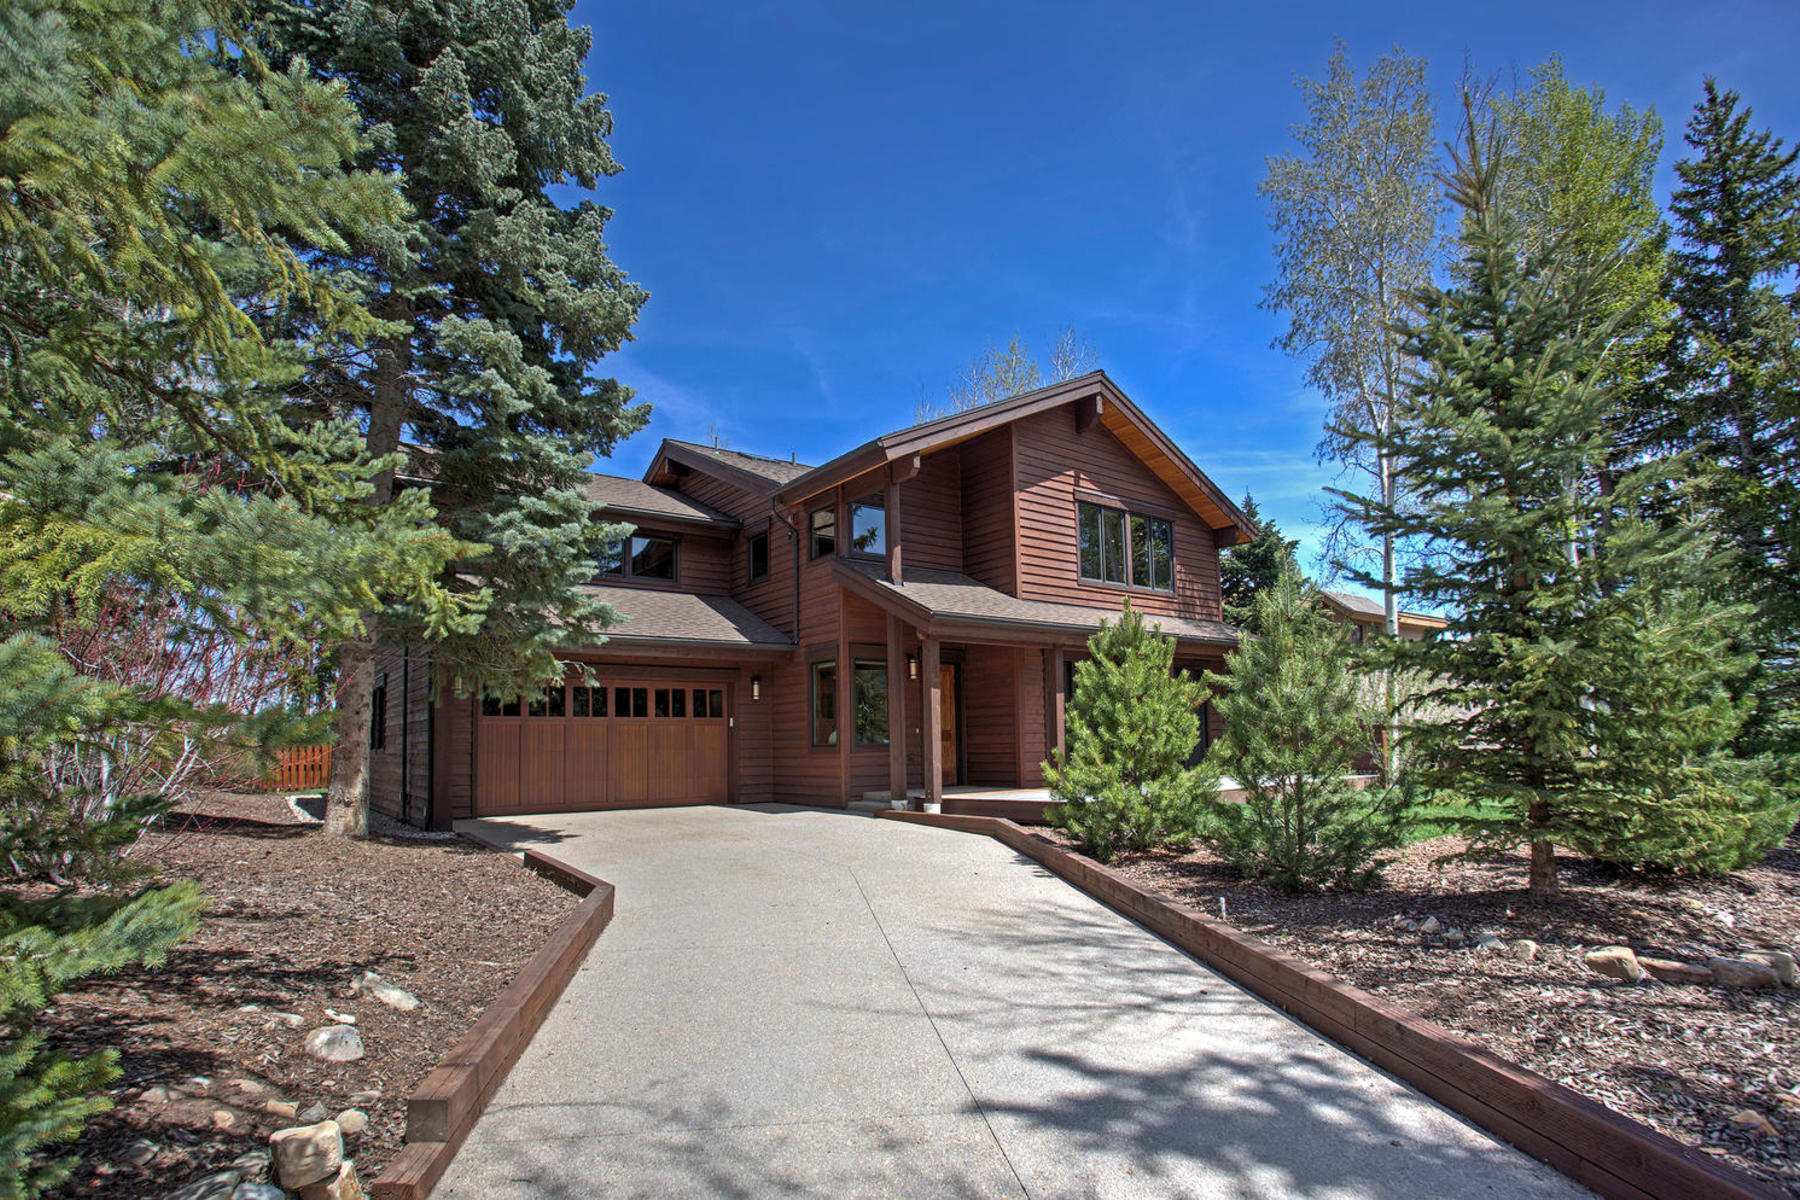 Maison unifamiliale pour l Vente à Walk to Skiing From This Craftsman Home 4 Kings Ct Park City, Utah, 84060 États-Unis